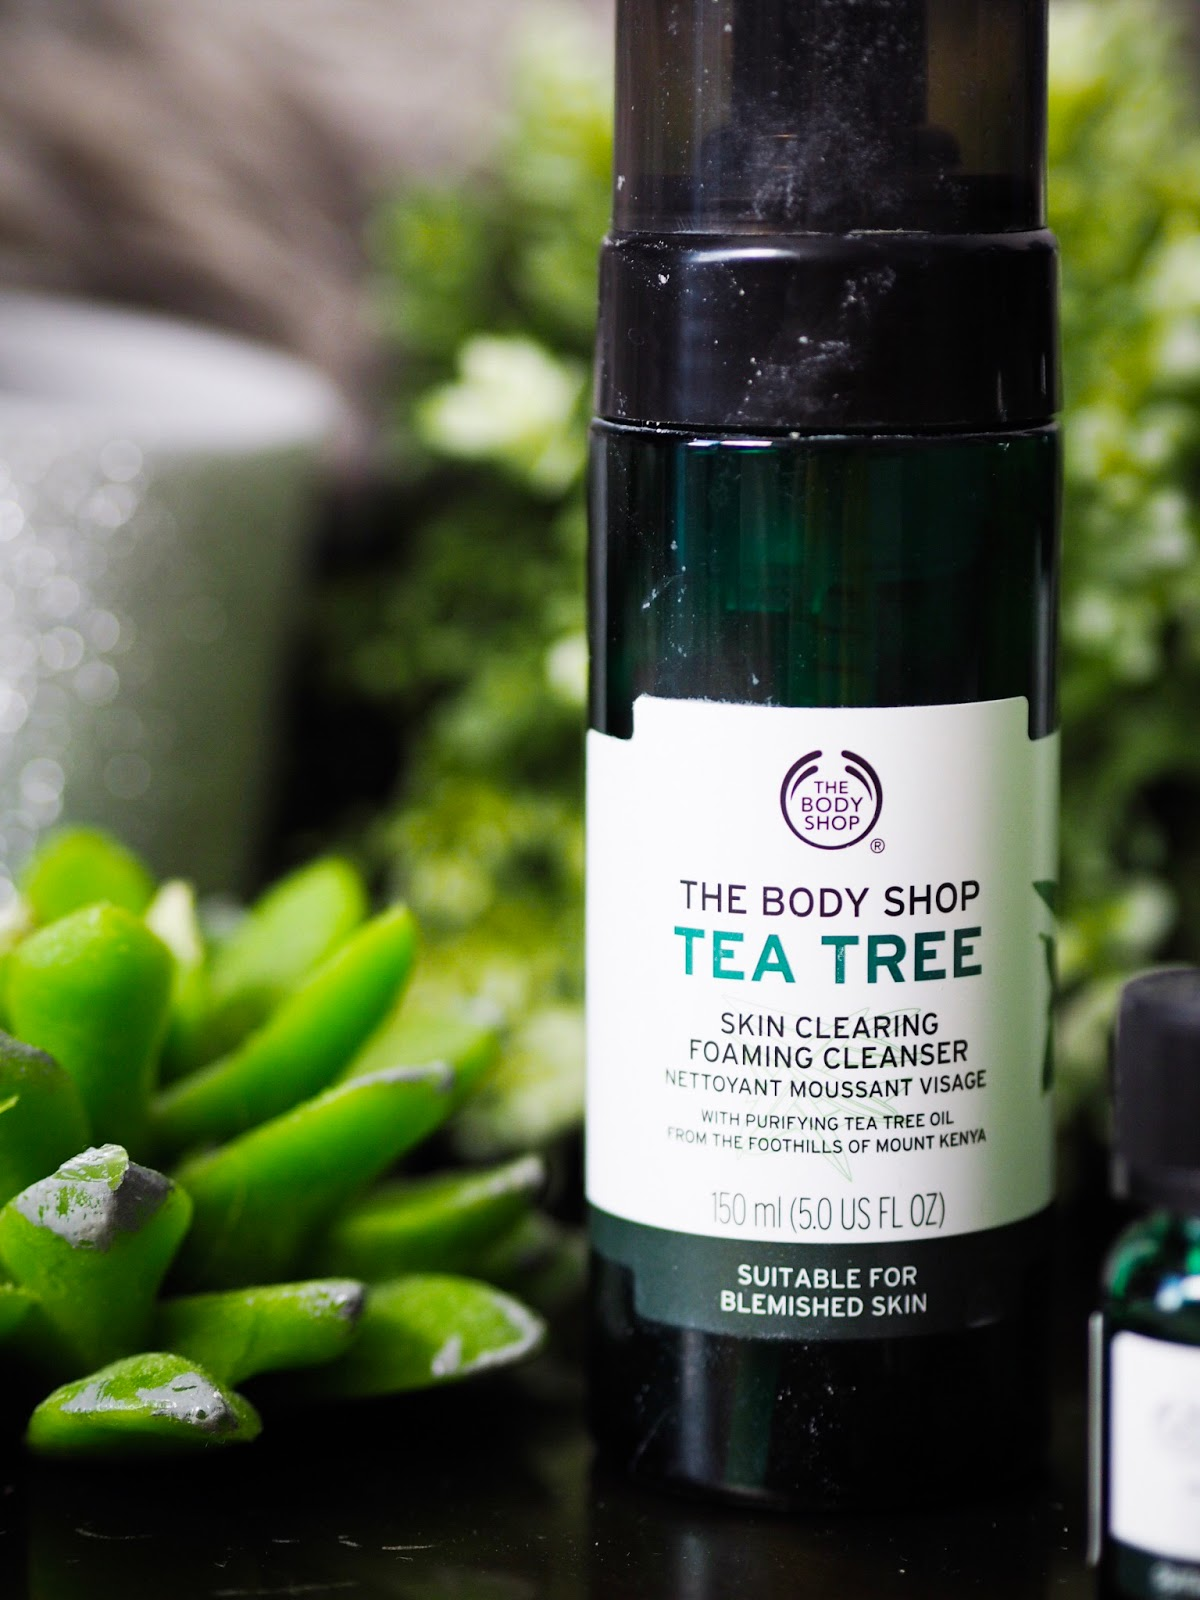 5325bfe2fa7 Updating my skincare cupboard with The Body Shop - Alina Sirbu